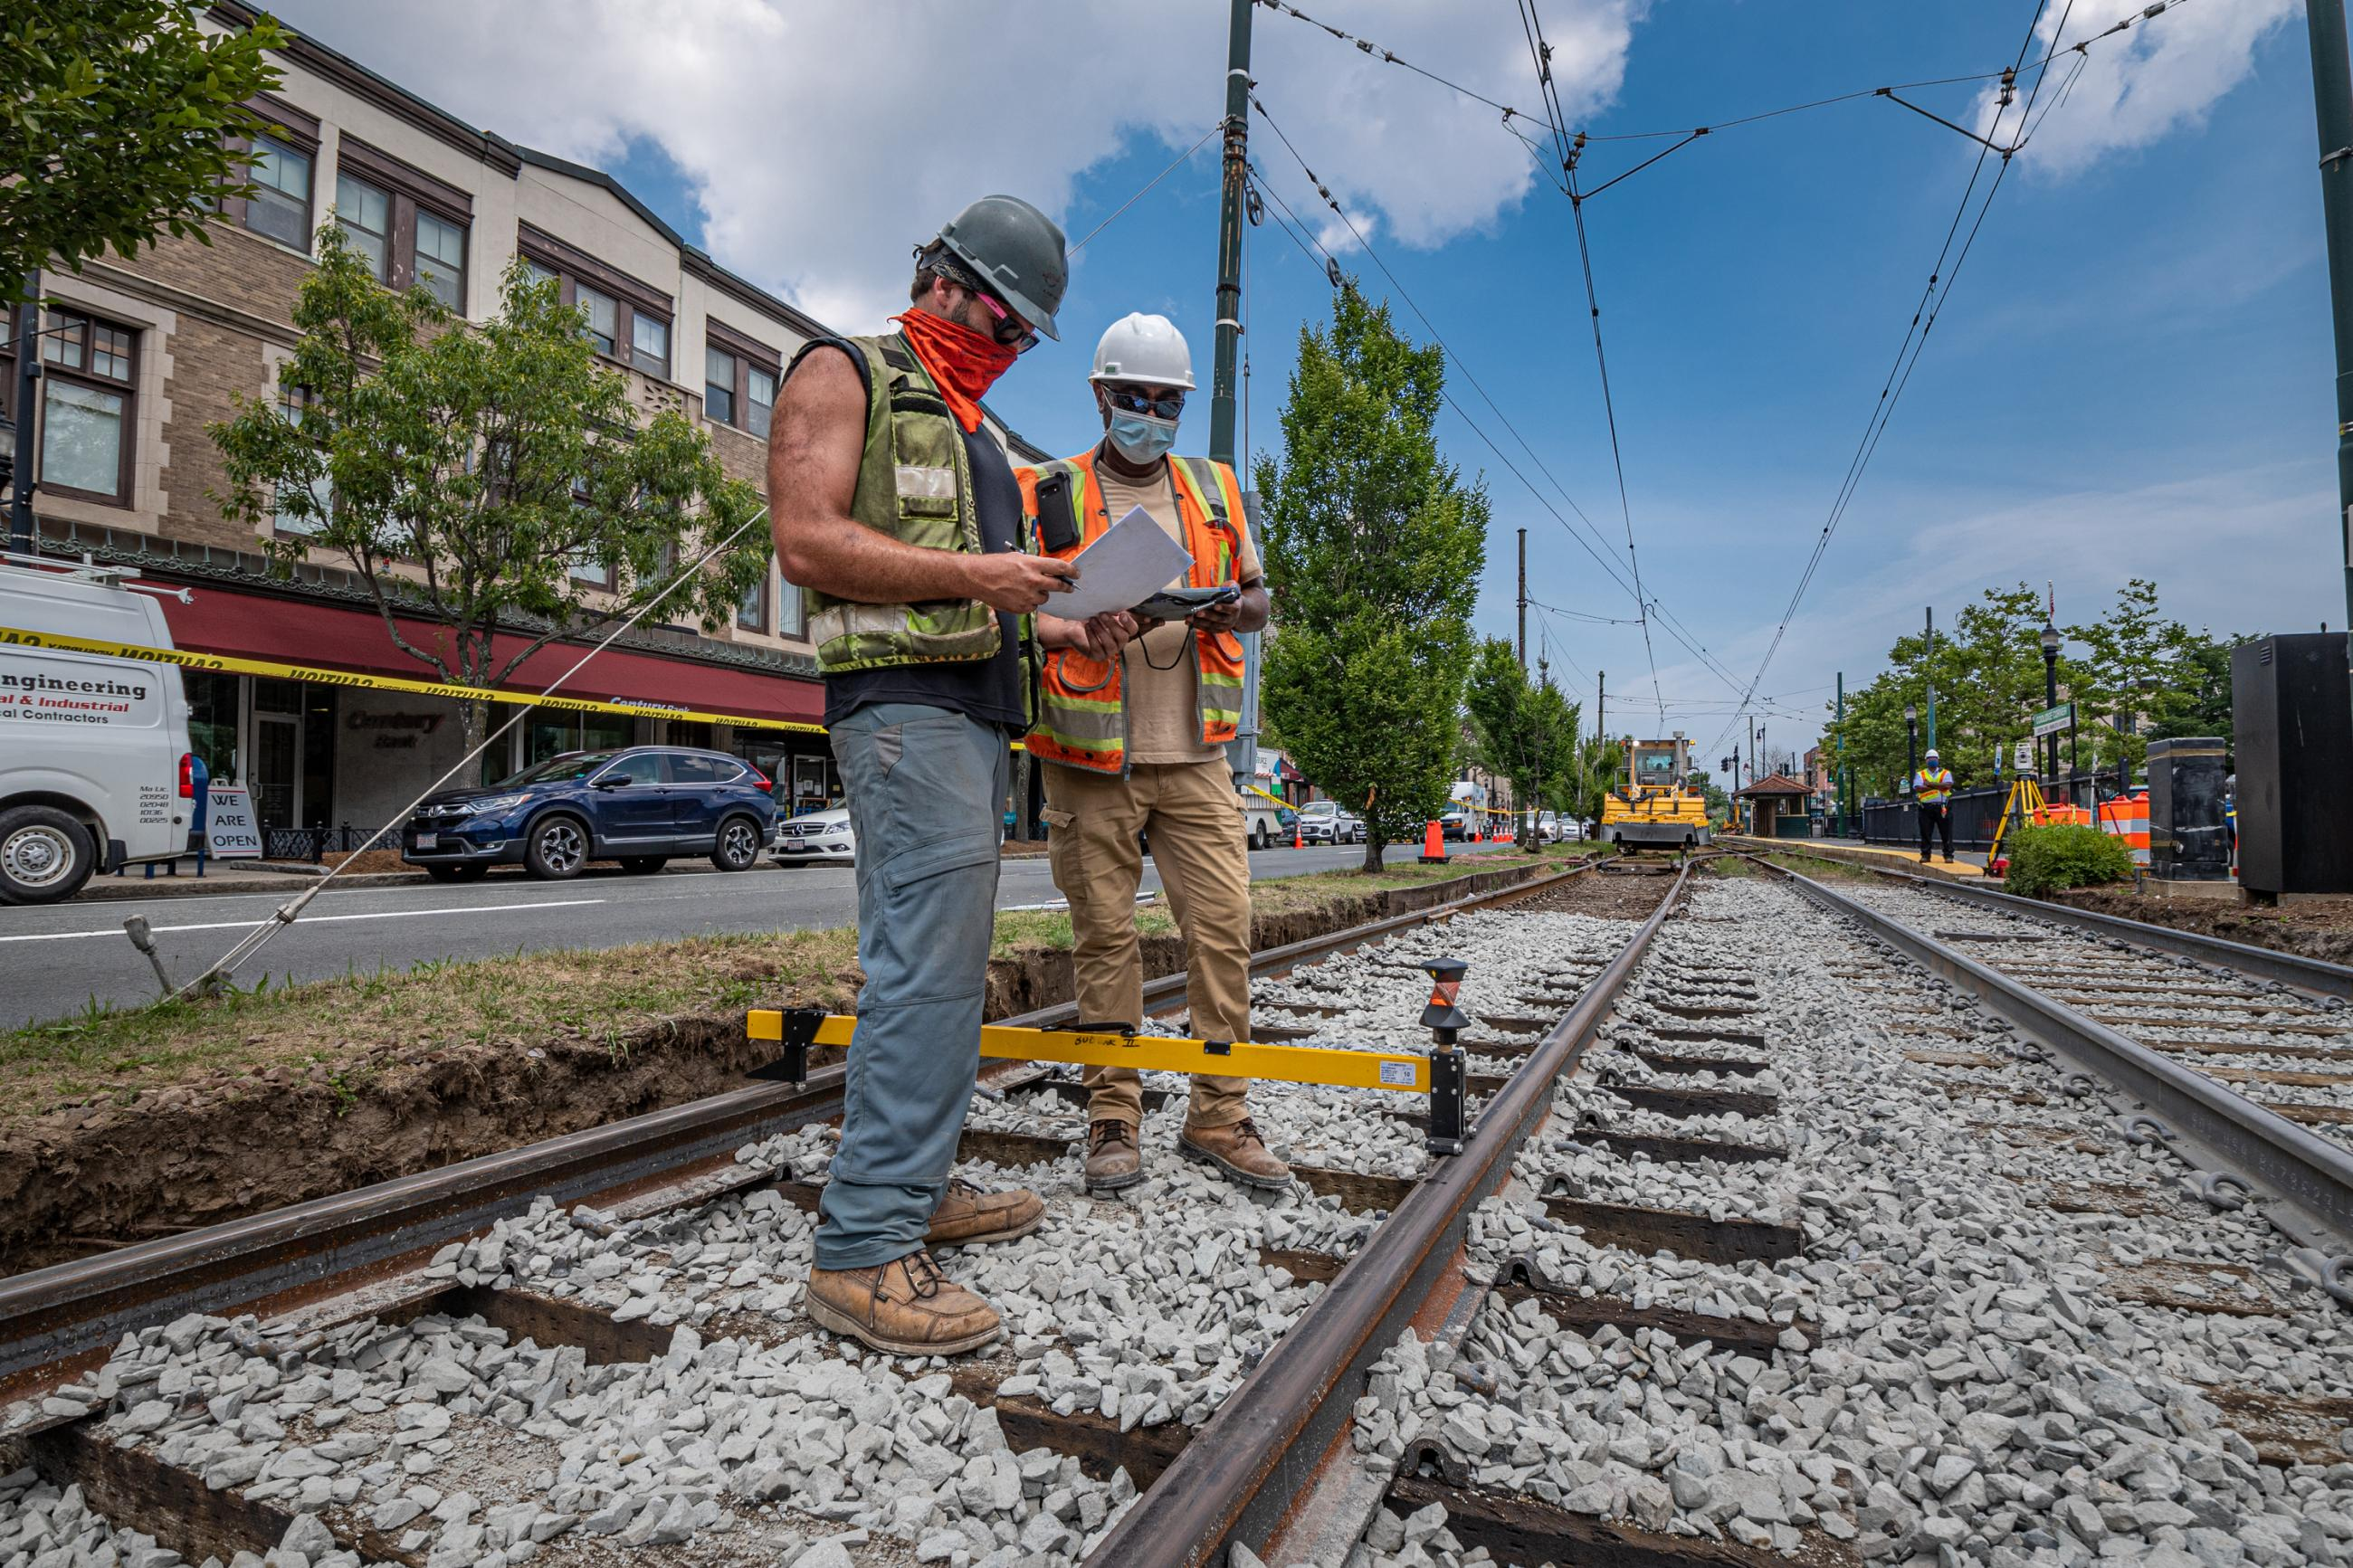 Crew members preparing for track work on the Green Line C Branch